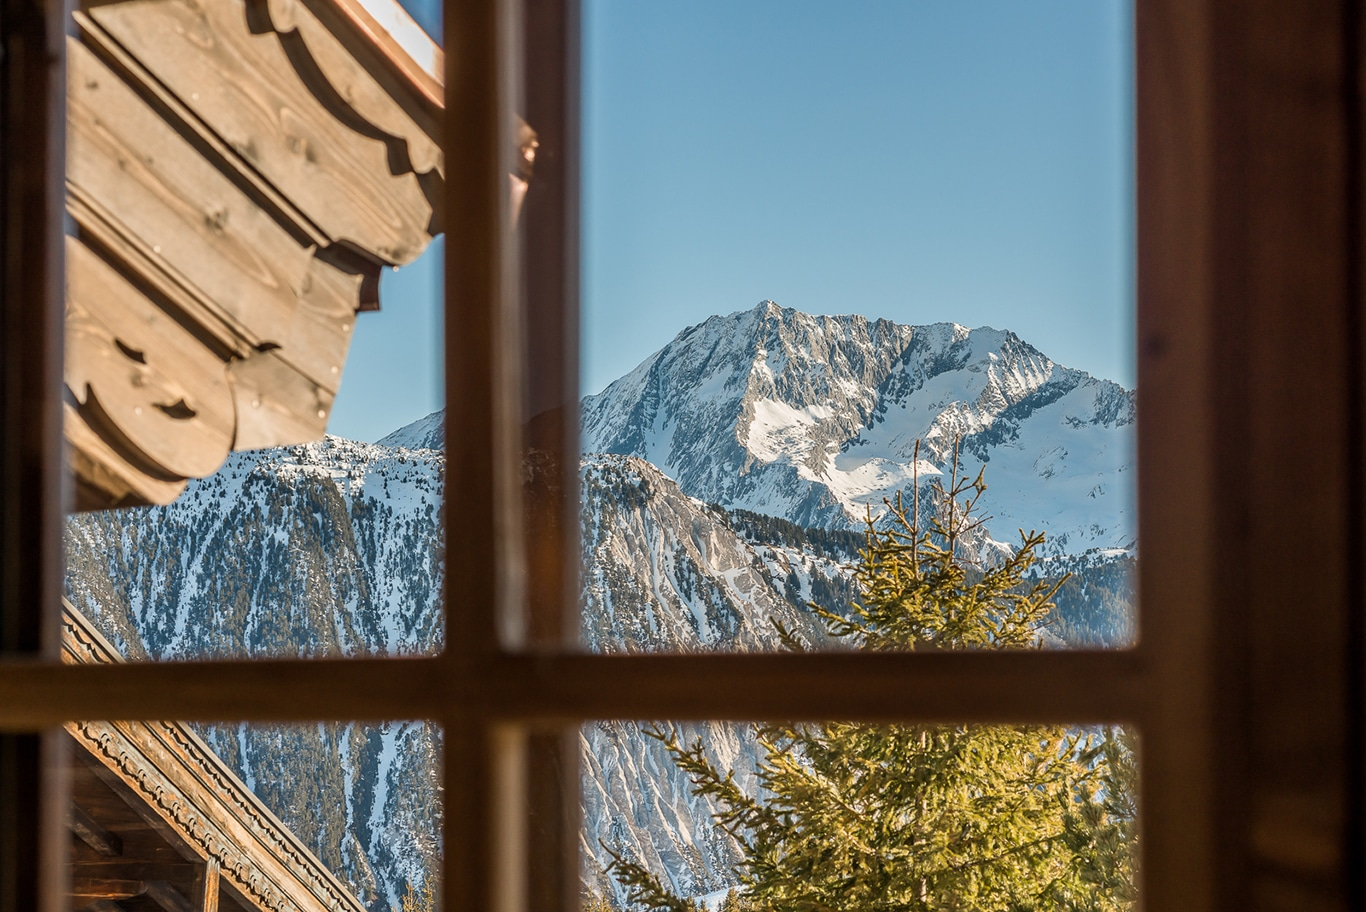 Chalet Namaste Courchevel 1850 View from Window